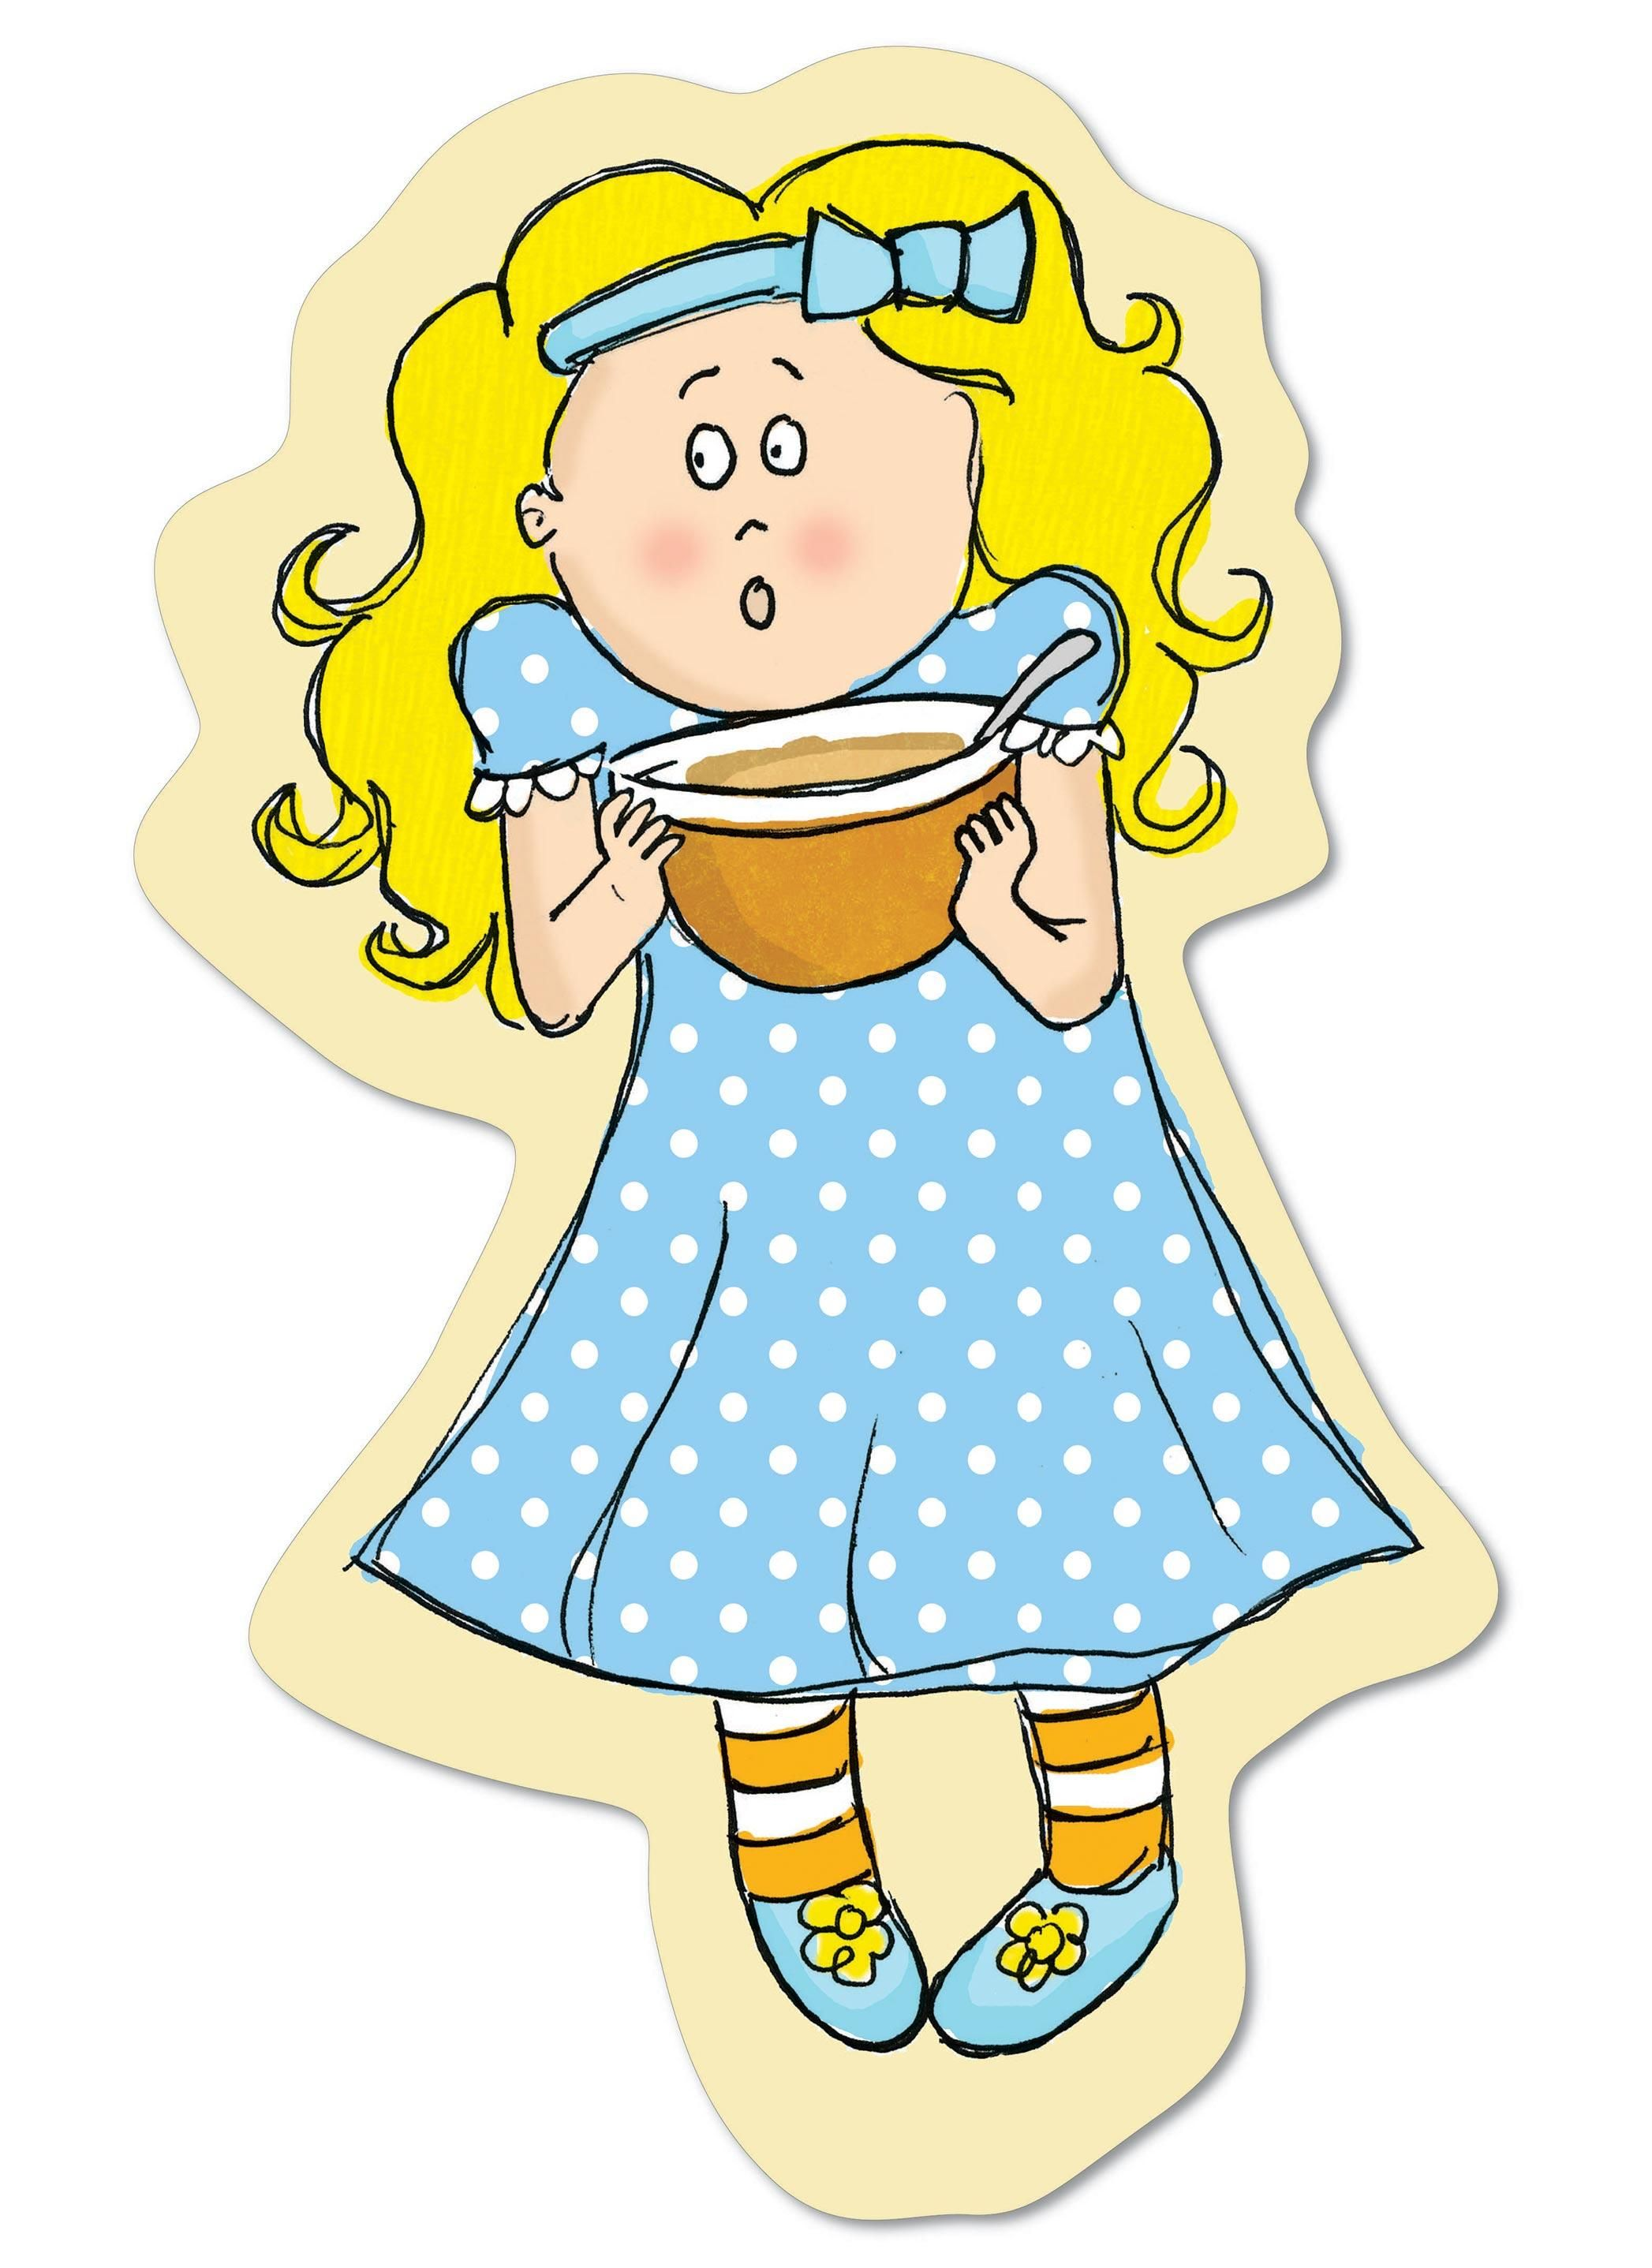 sj9734l fairytale goldilocks large 70cm x 40cm 01 jpg 2094 2875 rh pinterest com goldilocks bears clipart goldilocks cute clipart